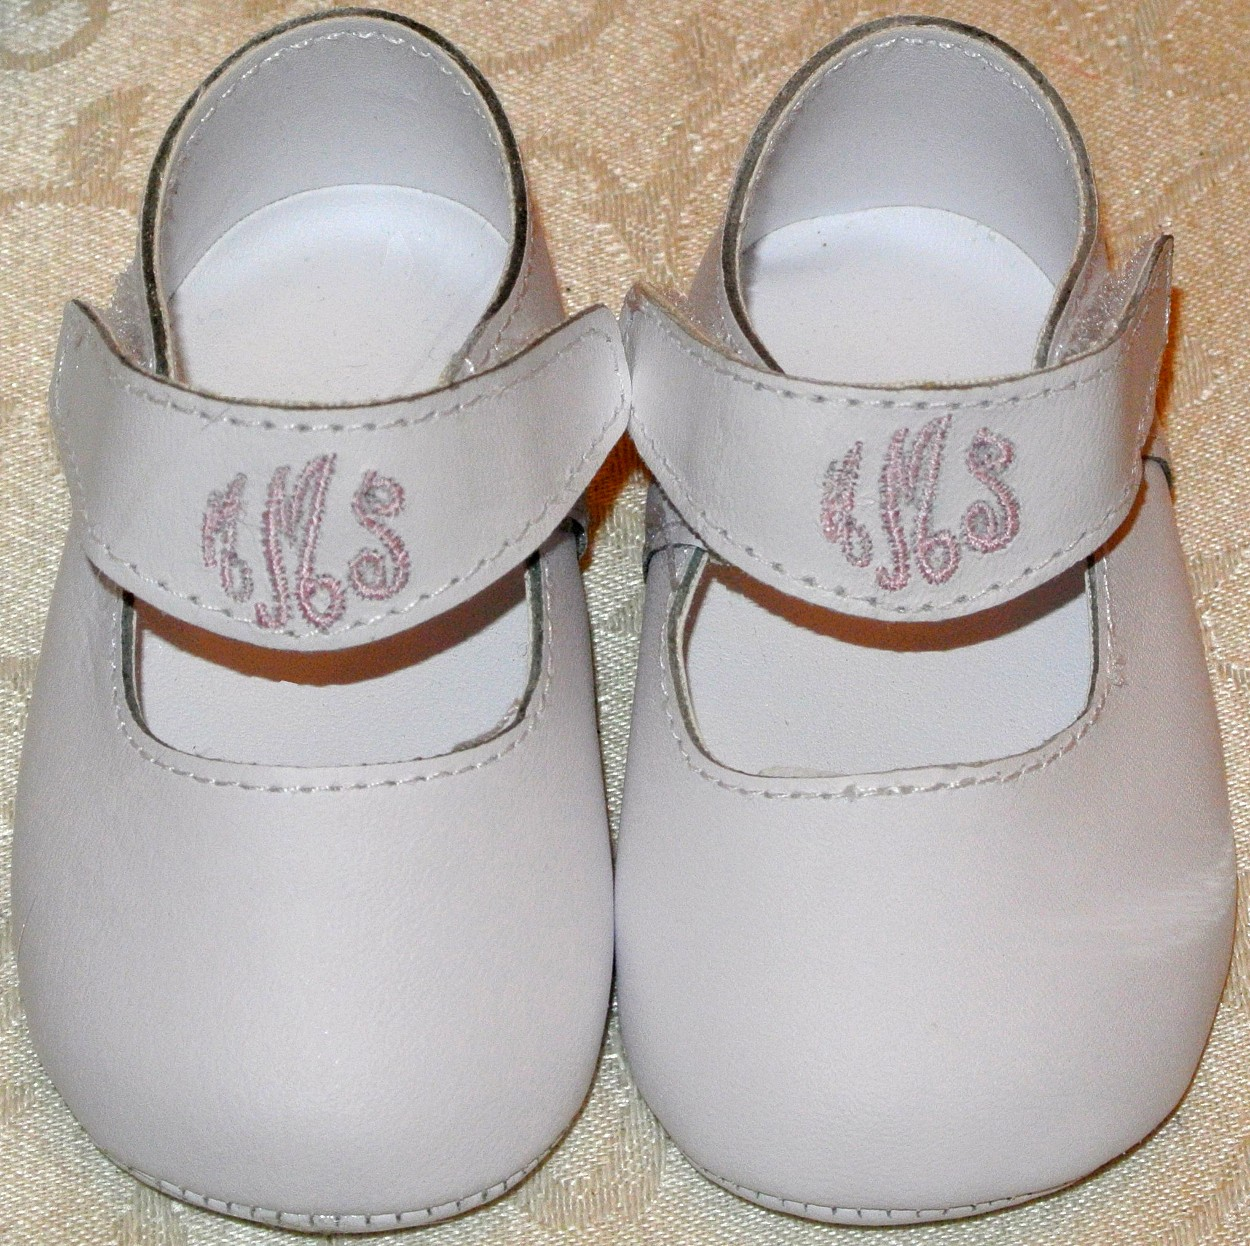 Monogrammed Baby Shoes, Personalized Shoes for Babies Girls Boys